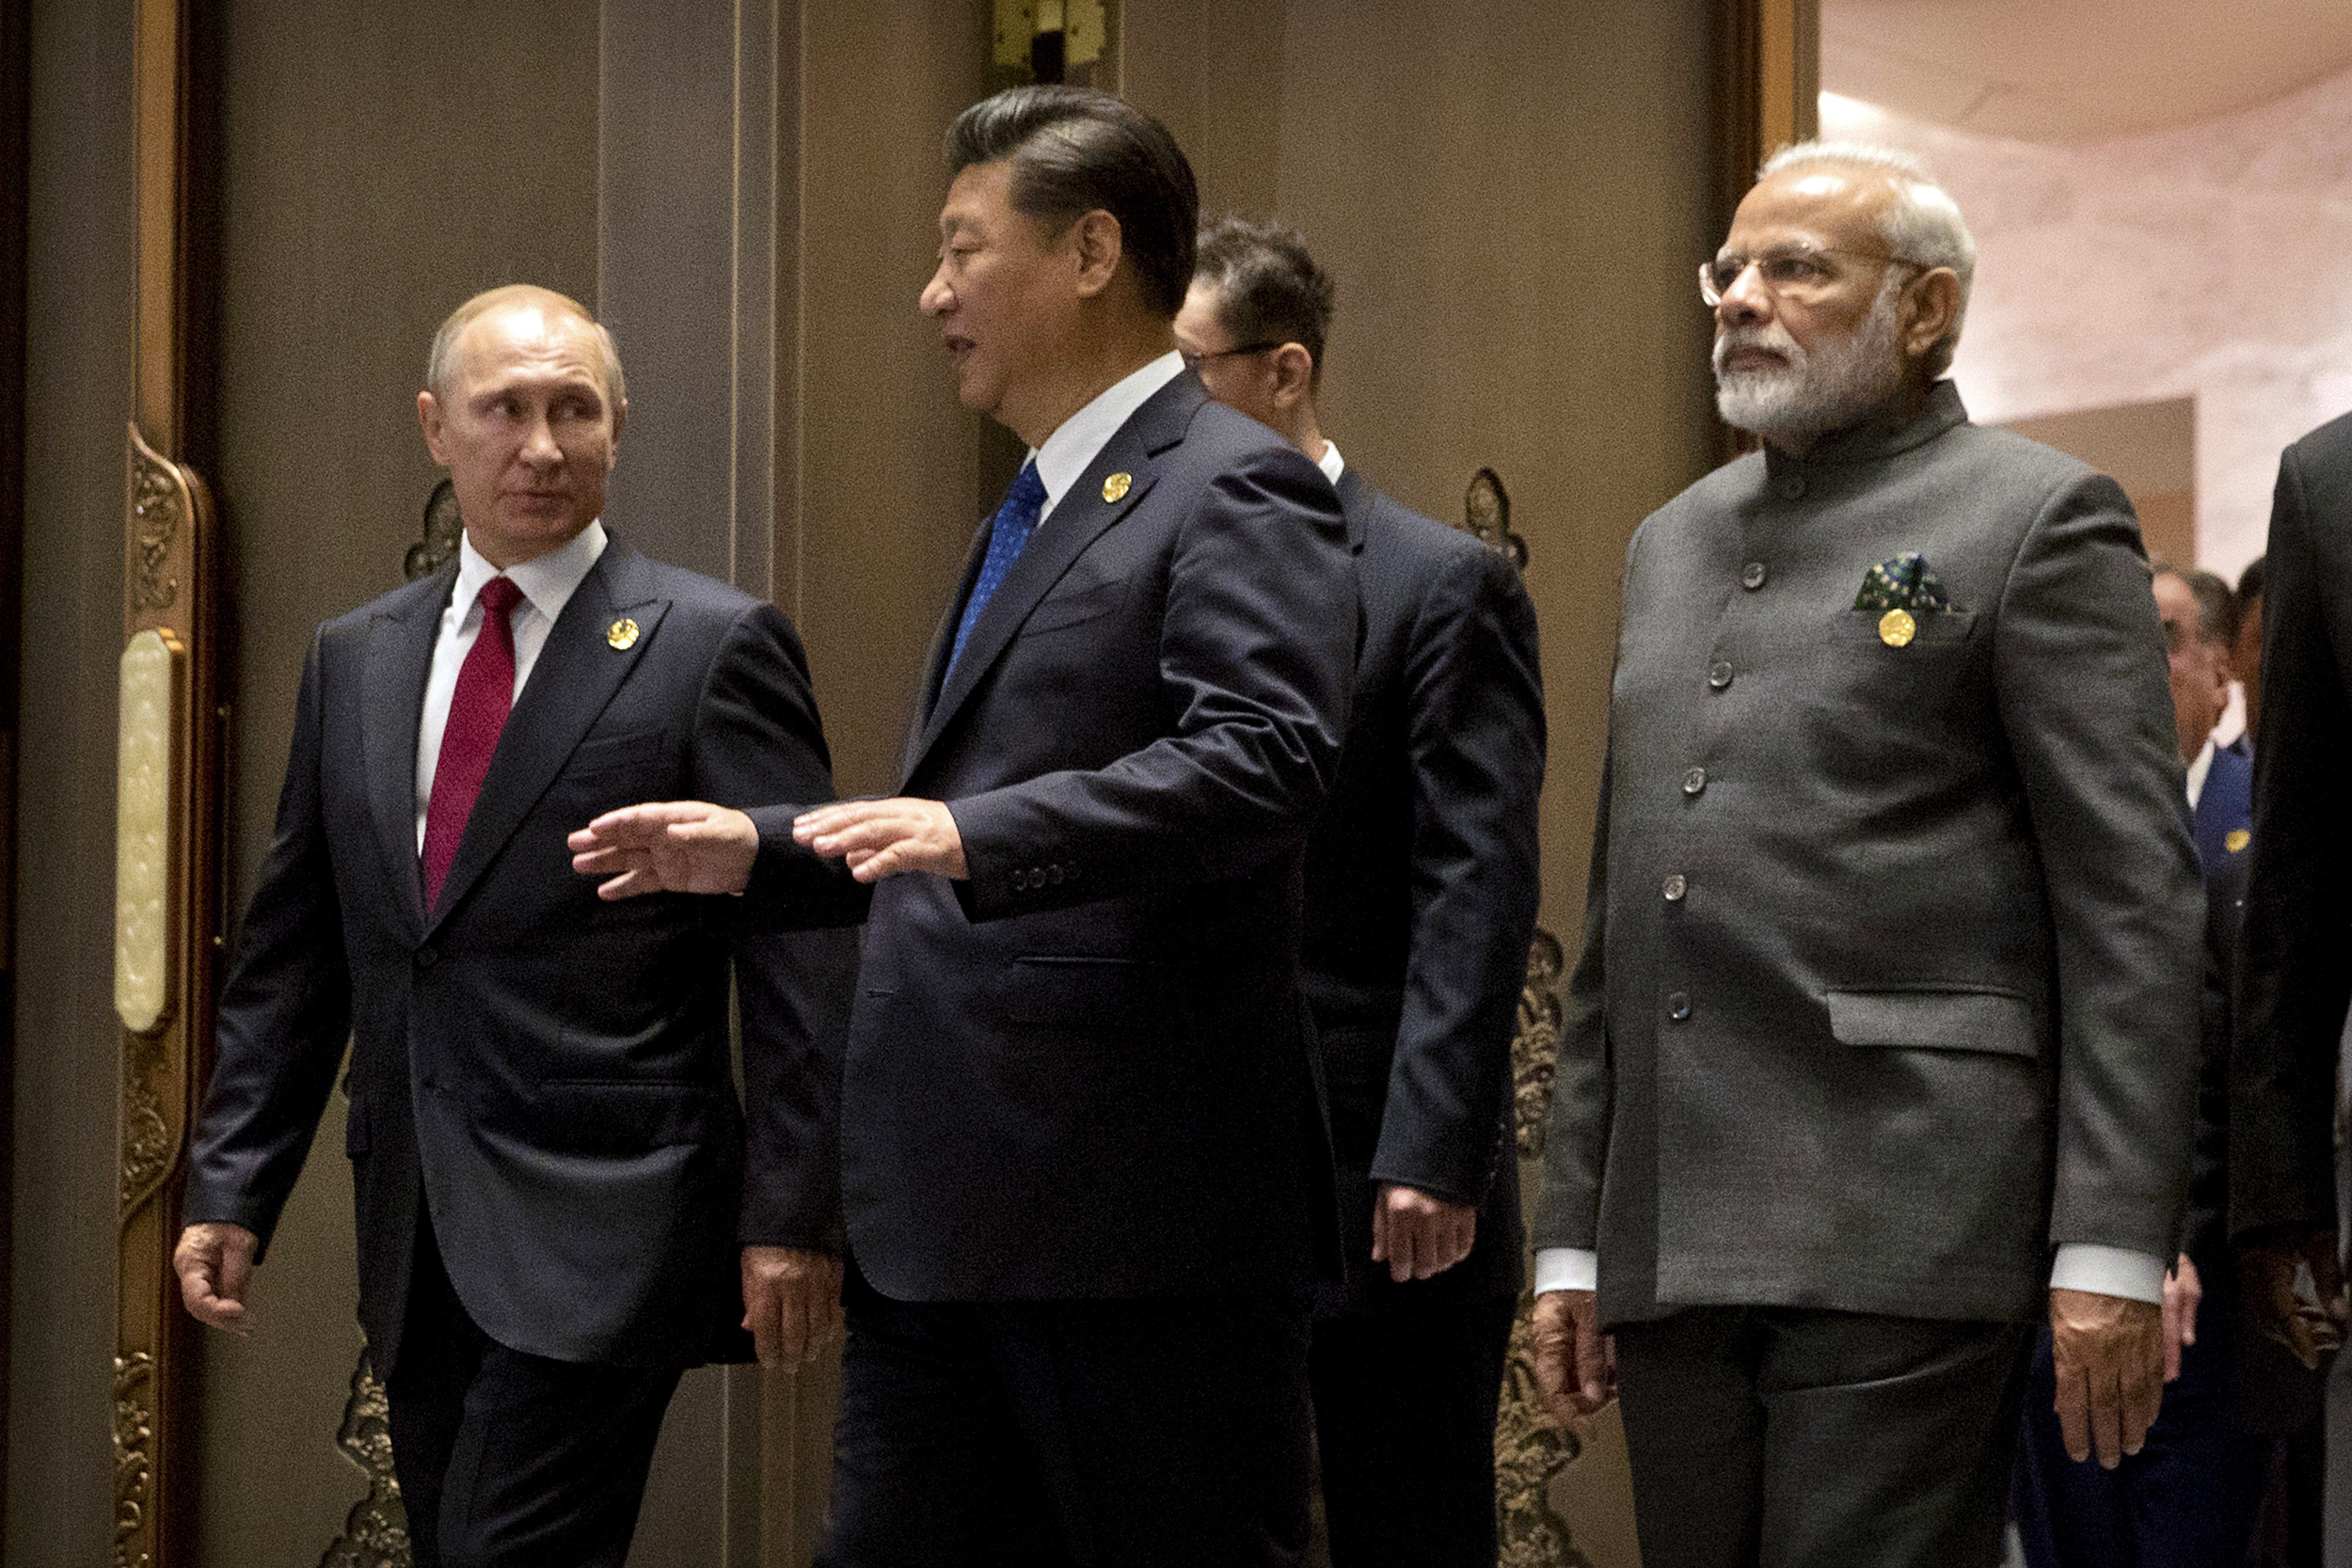 Image: Russian President Vladimir Putin, Chinese President Xi Jinping and Indian Prime Minister Narendra Modi